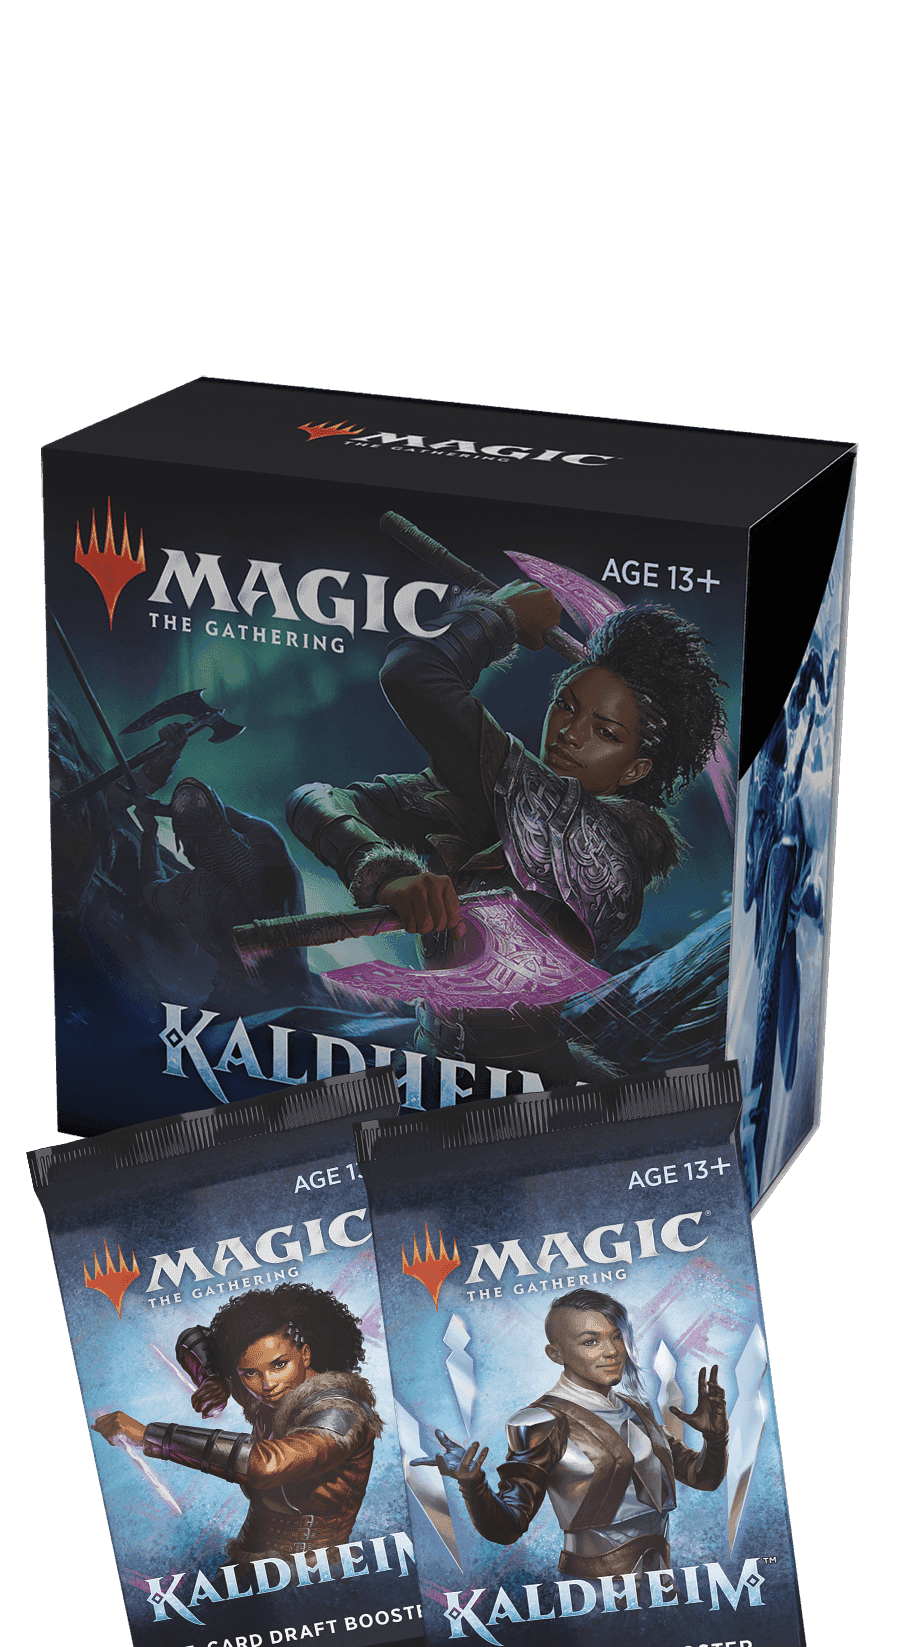 preorder-kaldheim-prerelease-kit-wizards-of-the-coast-thegamersden.com